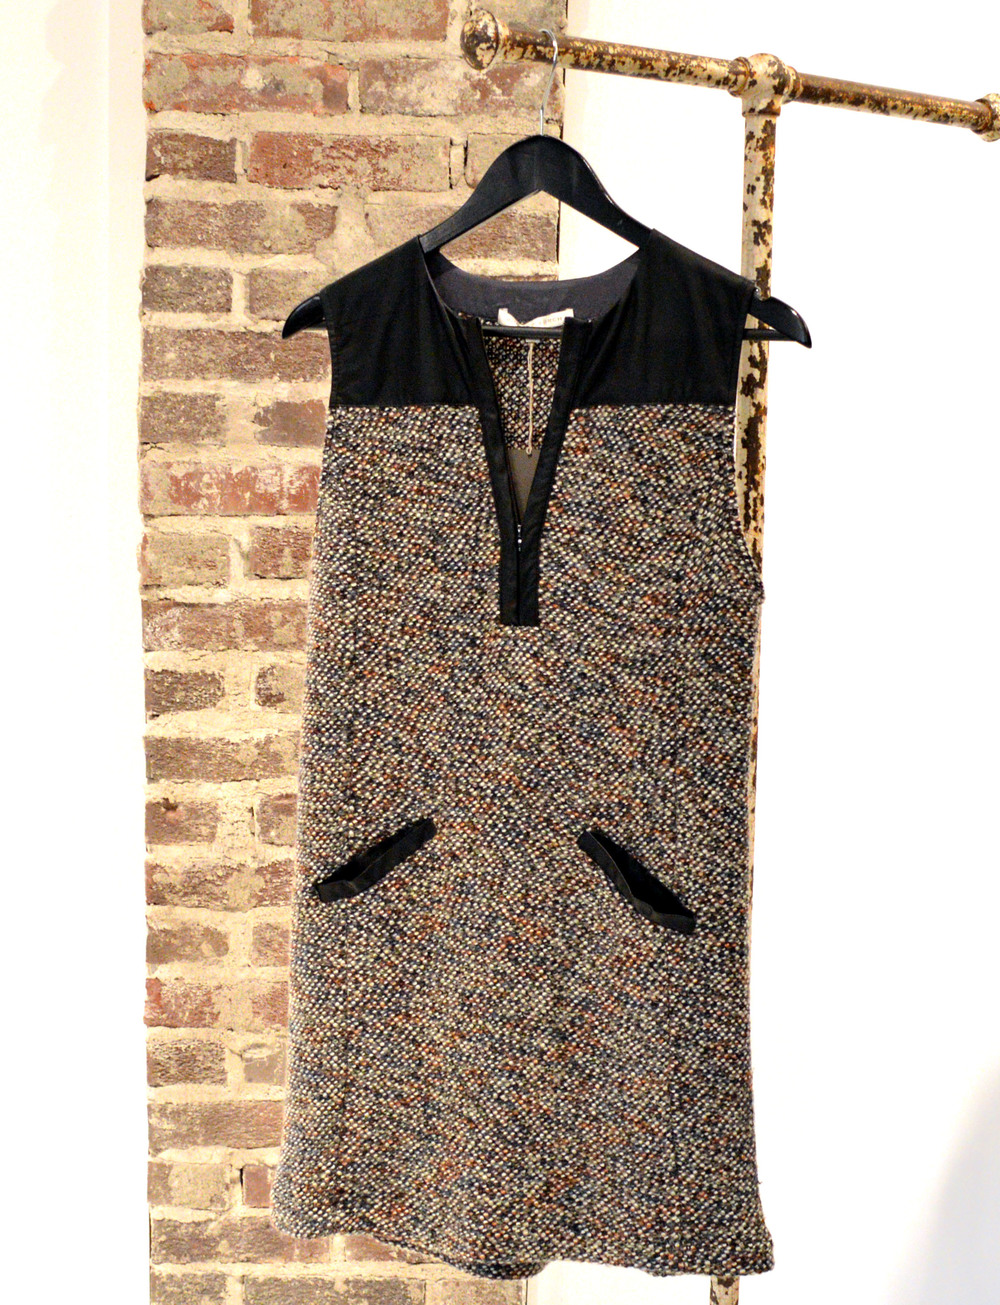 This leather and tweed dress looks great with black leather booties and a button-up or sheer black tee underneath! $395